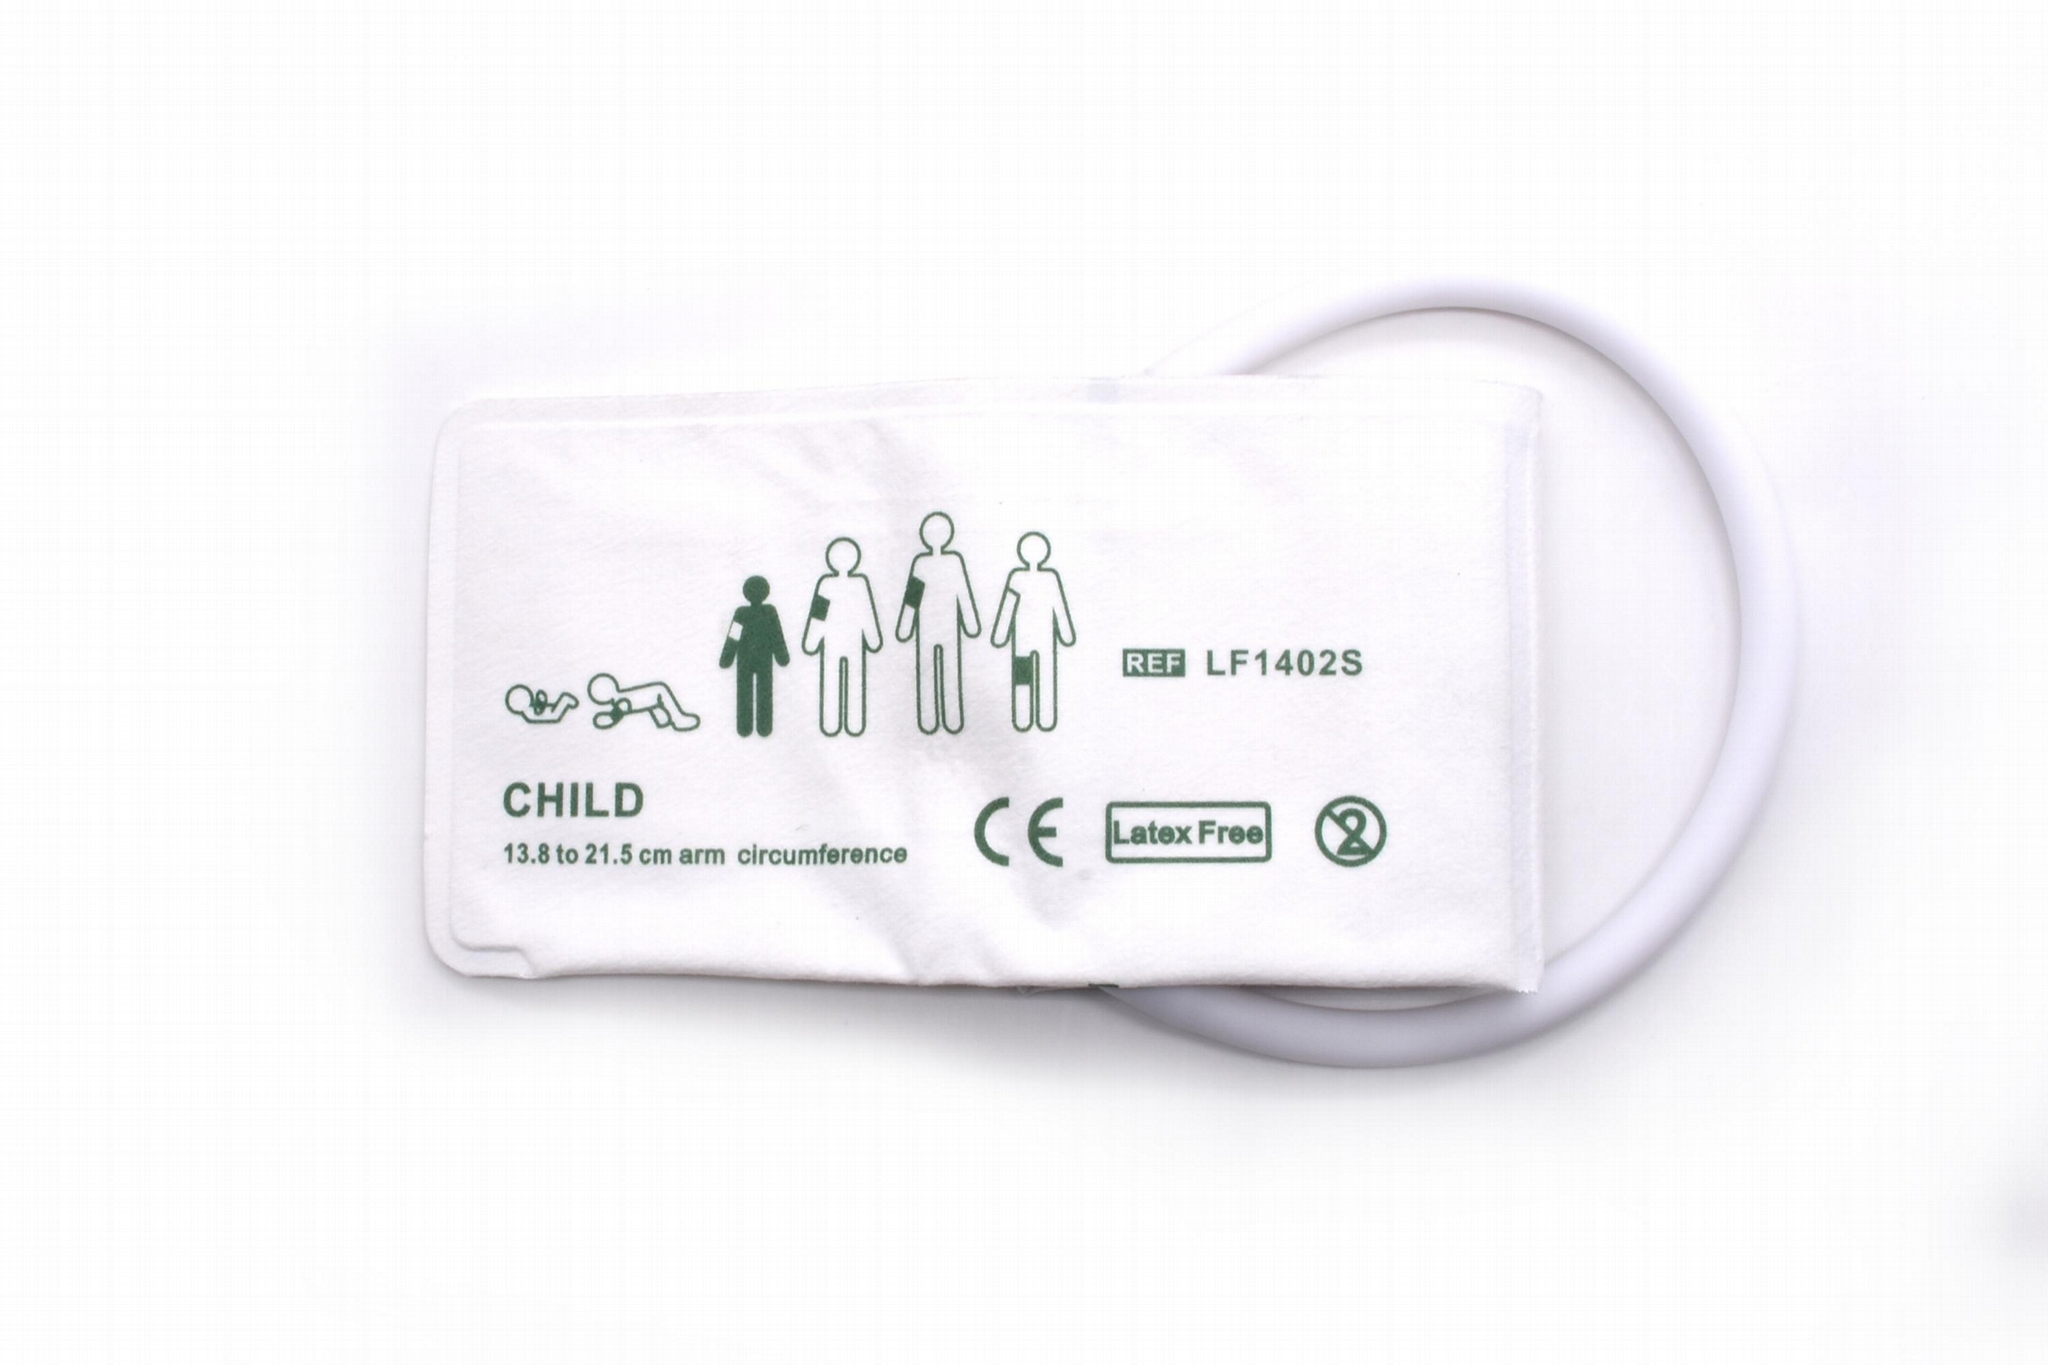 Disposable blood pressure nibp cuff for child 13.8 to 21.5cm 1